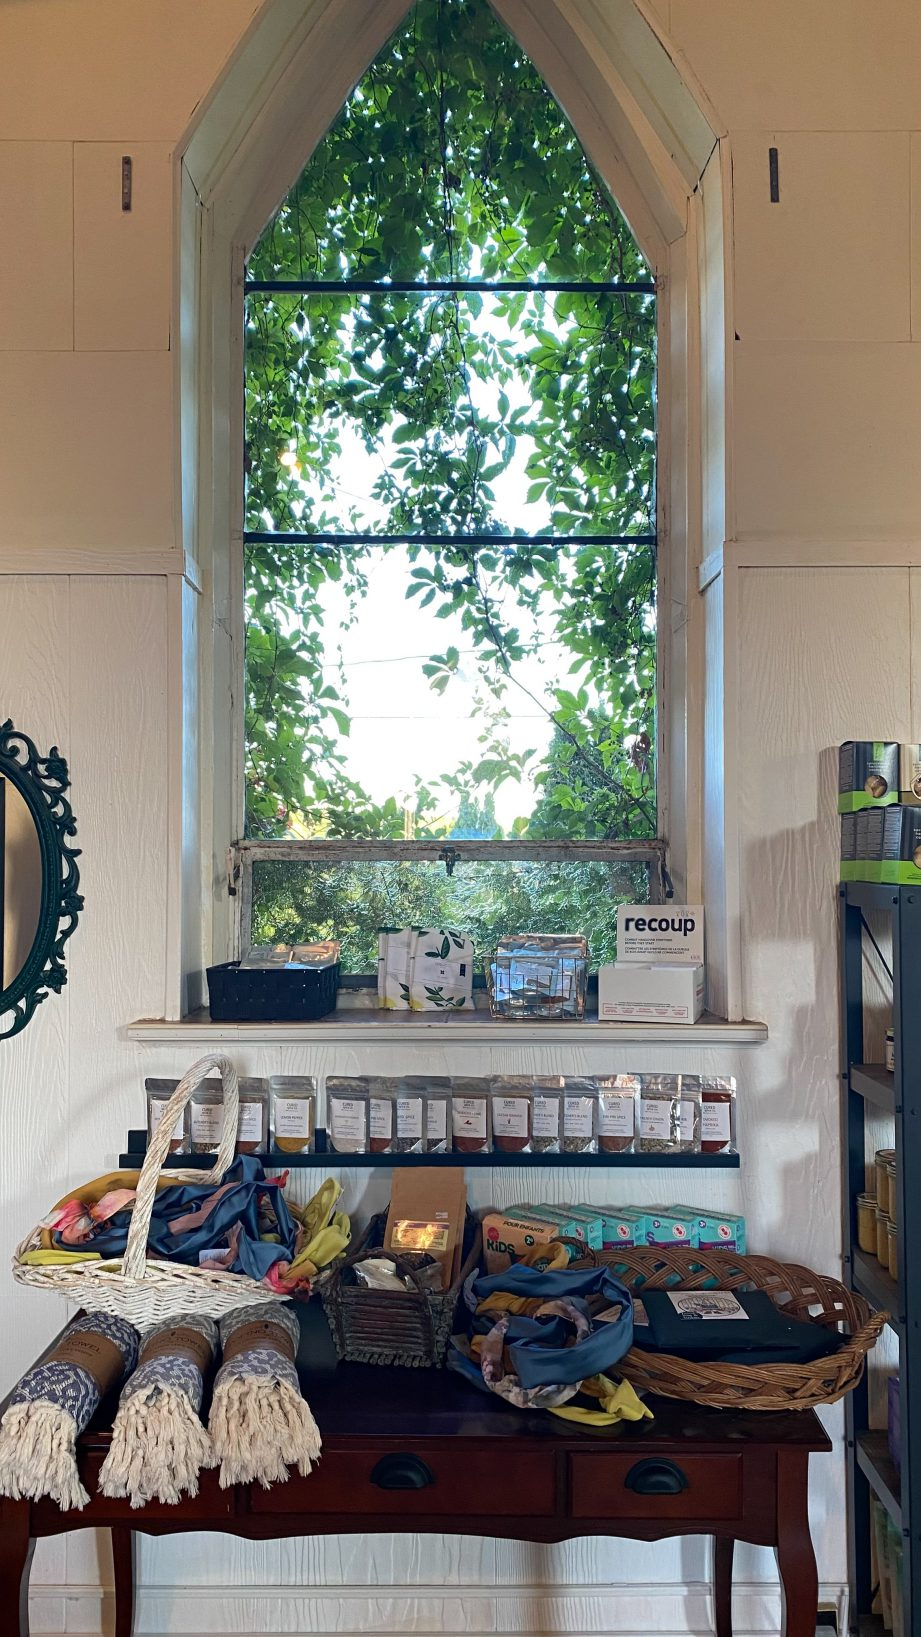 A window with a table in front of it holding various items.